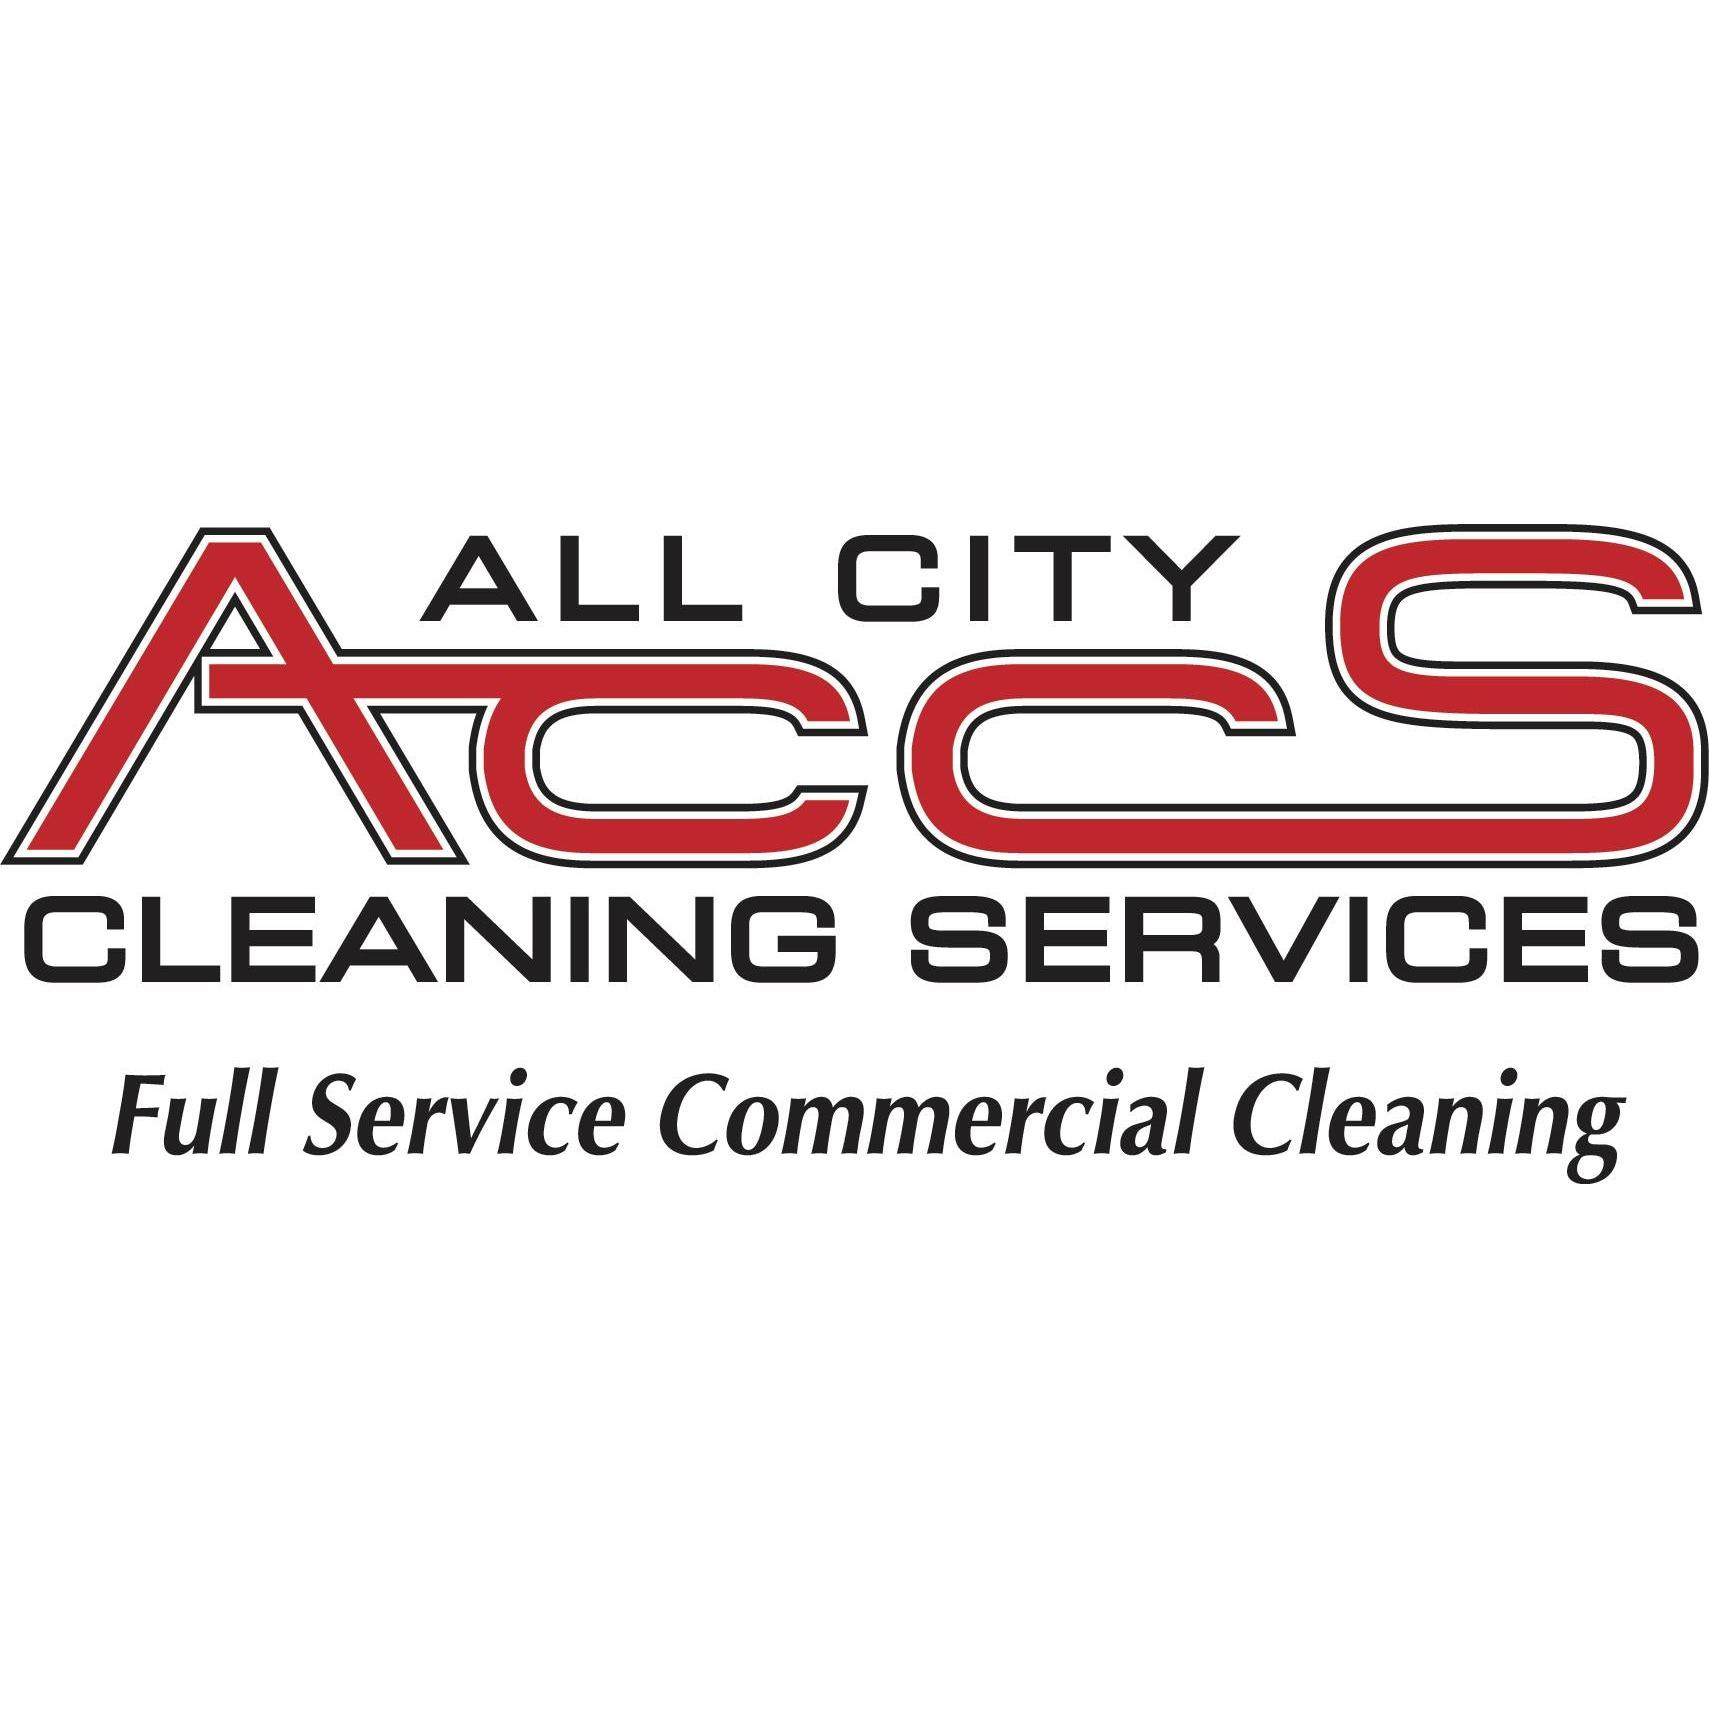 All City Cleaning Services